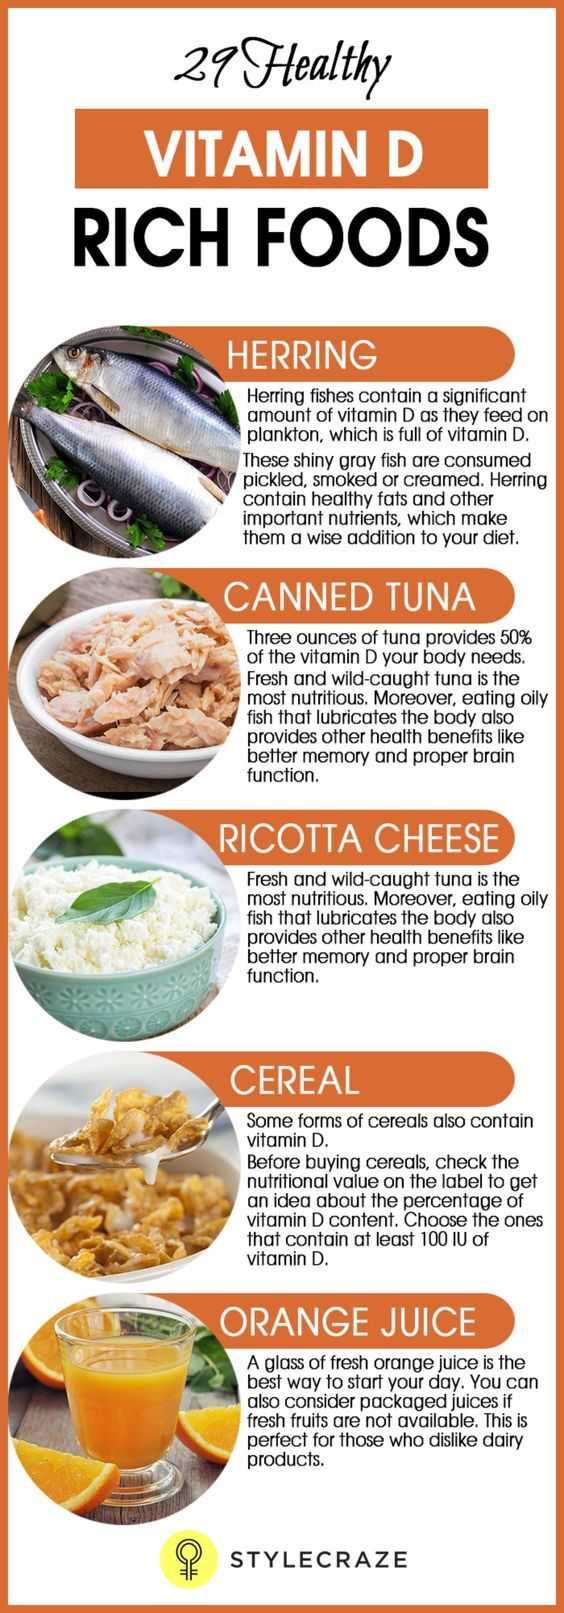 29 Healthy Vitamin D Rich Foods what vitamins should i take daily for a woman nutritional supplements iron nutritional supplements It is worth having vitamin D added to annual bloodwork. A few years ago, I found my vitamin D levels were way below normal range. Supplementation has improved cholesterol and thyroid function.